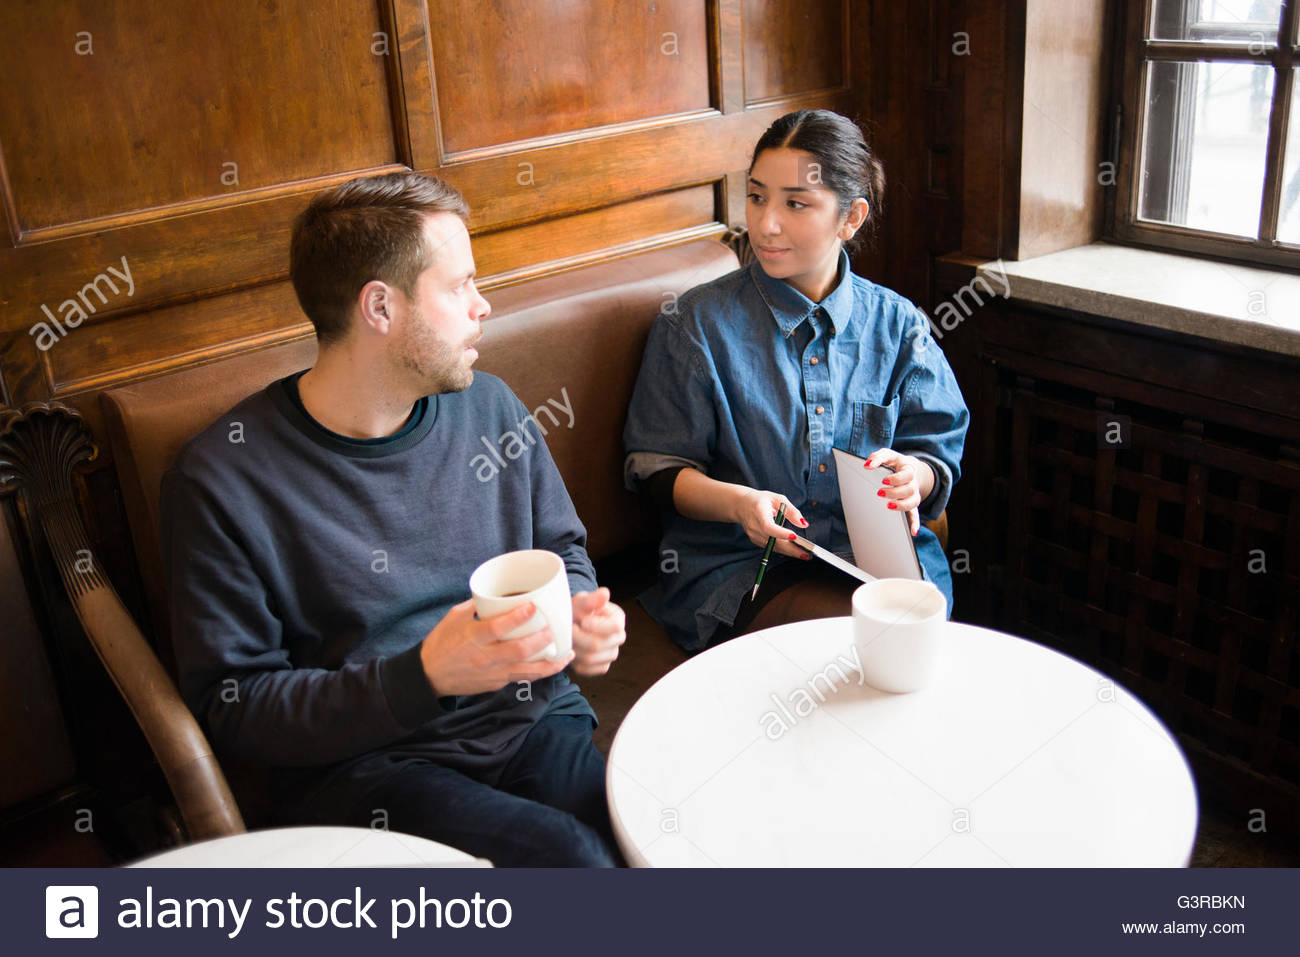 Sweden, Young people talking in cafe - Stock Image